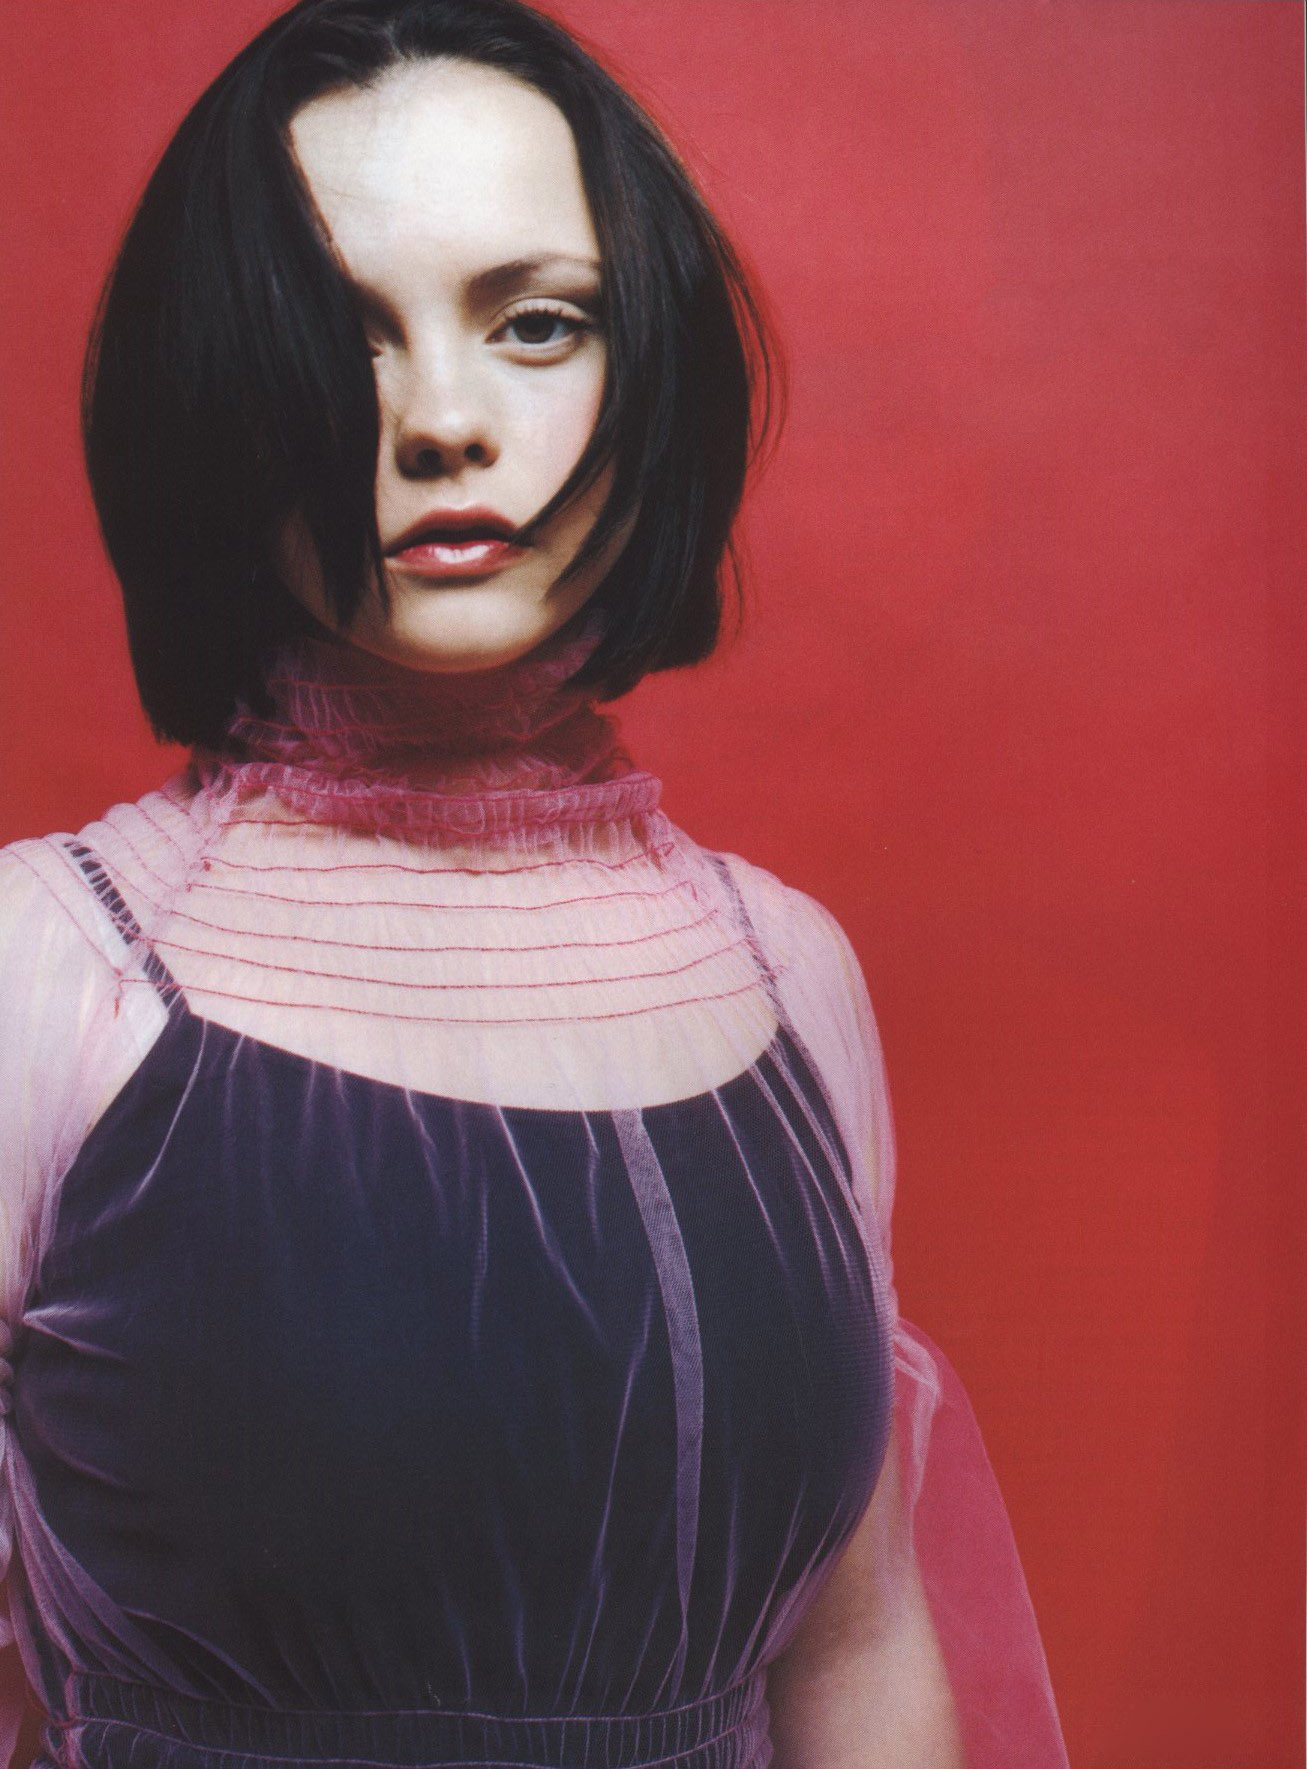 CHRISTINA RICCI PHOTOGRAPHY ELAINE CONSTANTINE THE FACE NO 21 OCTOBER 1998